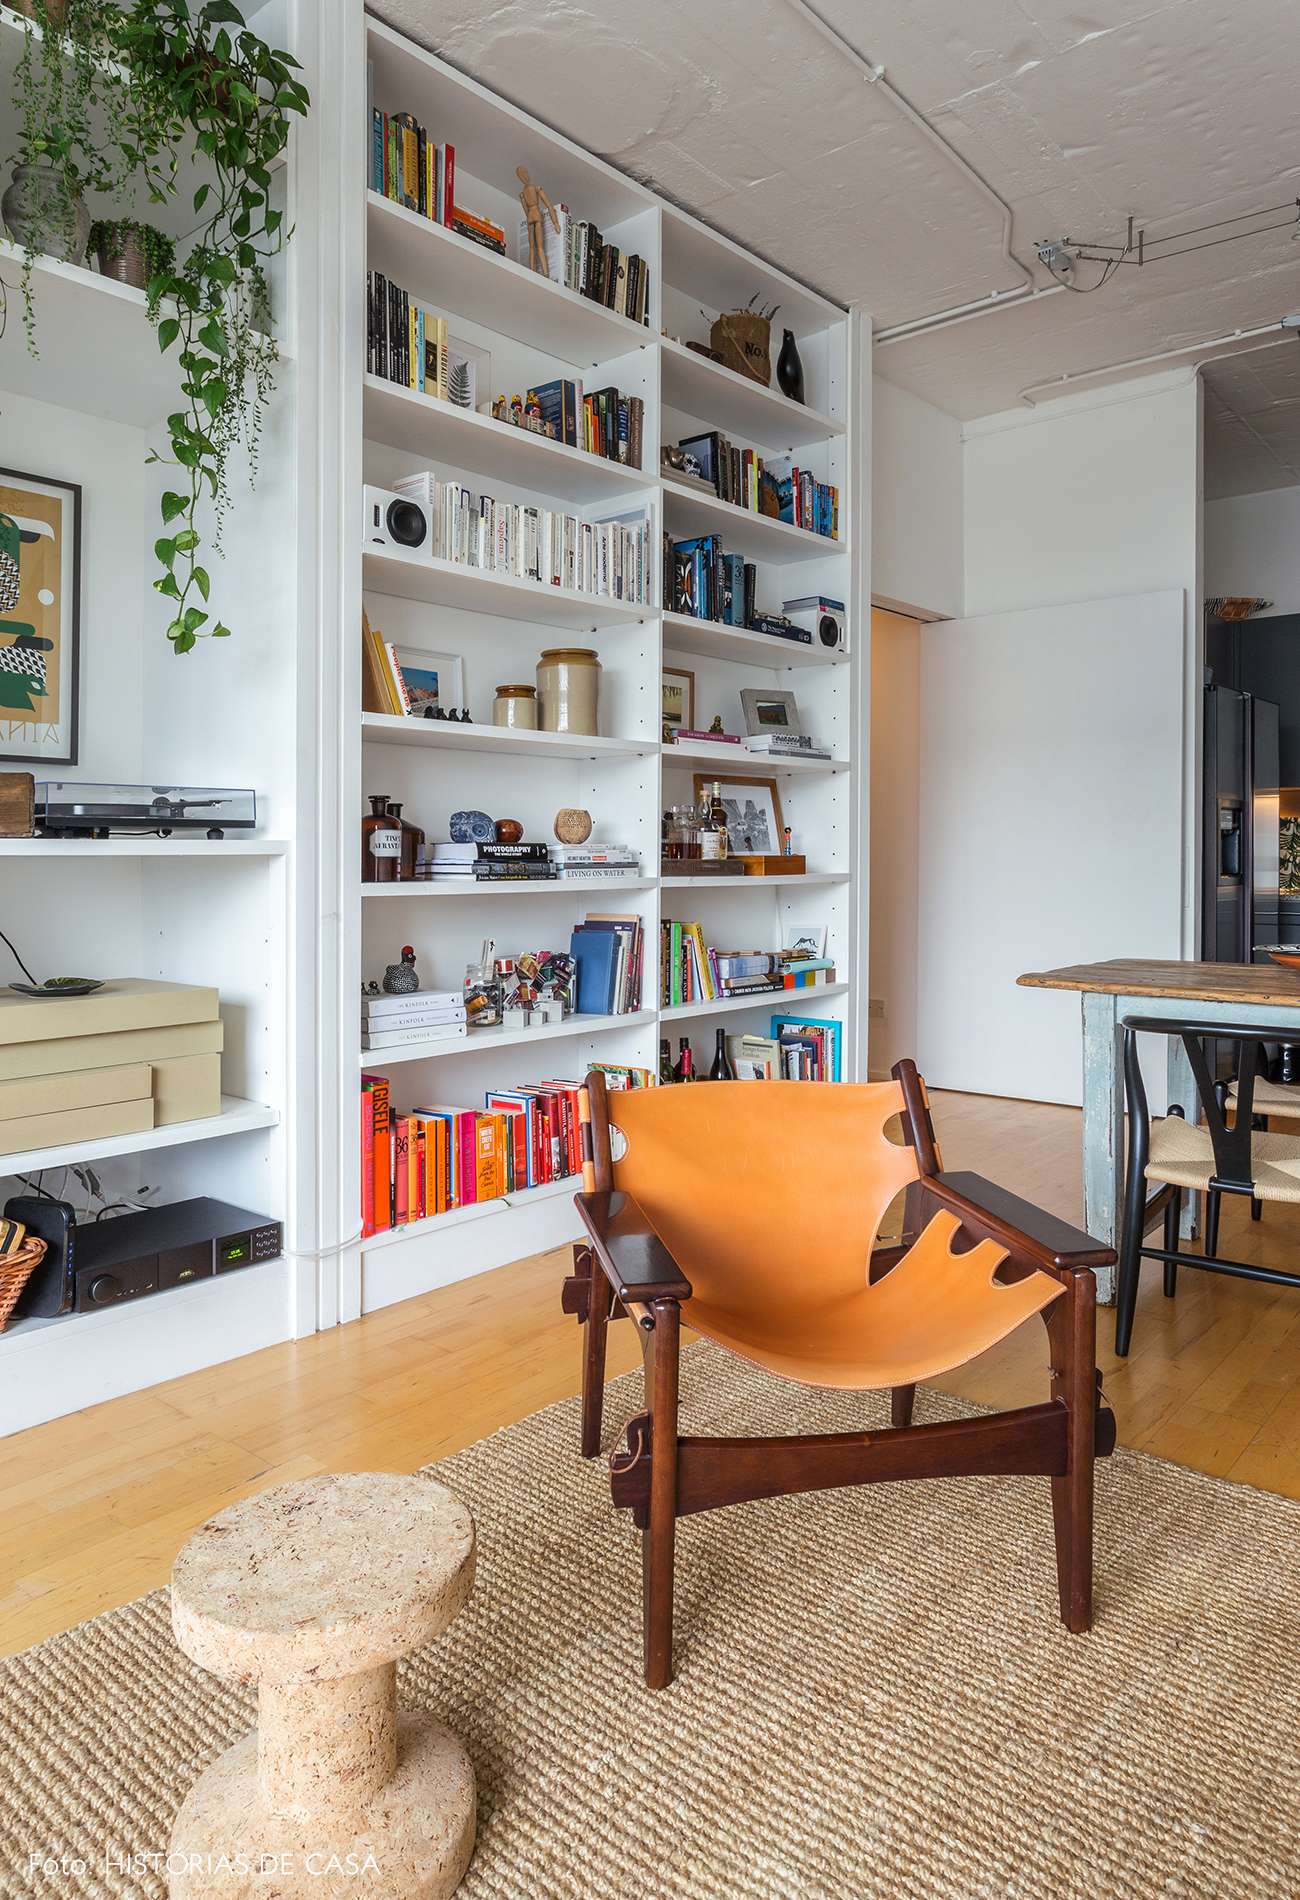 Living room with white bookcase and vintage furniture